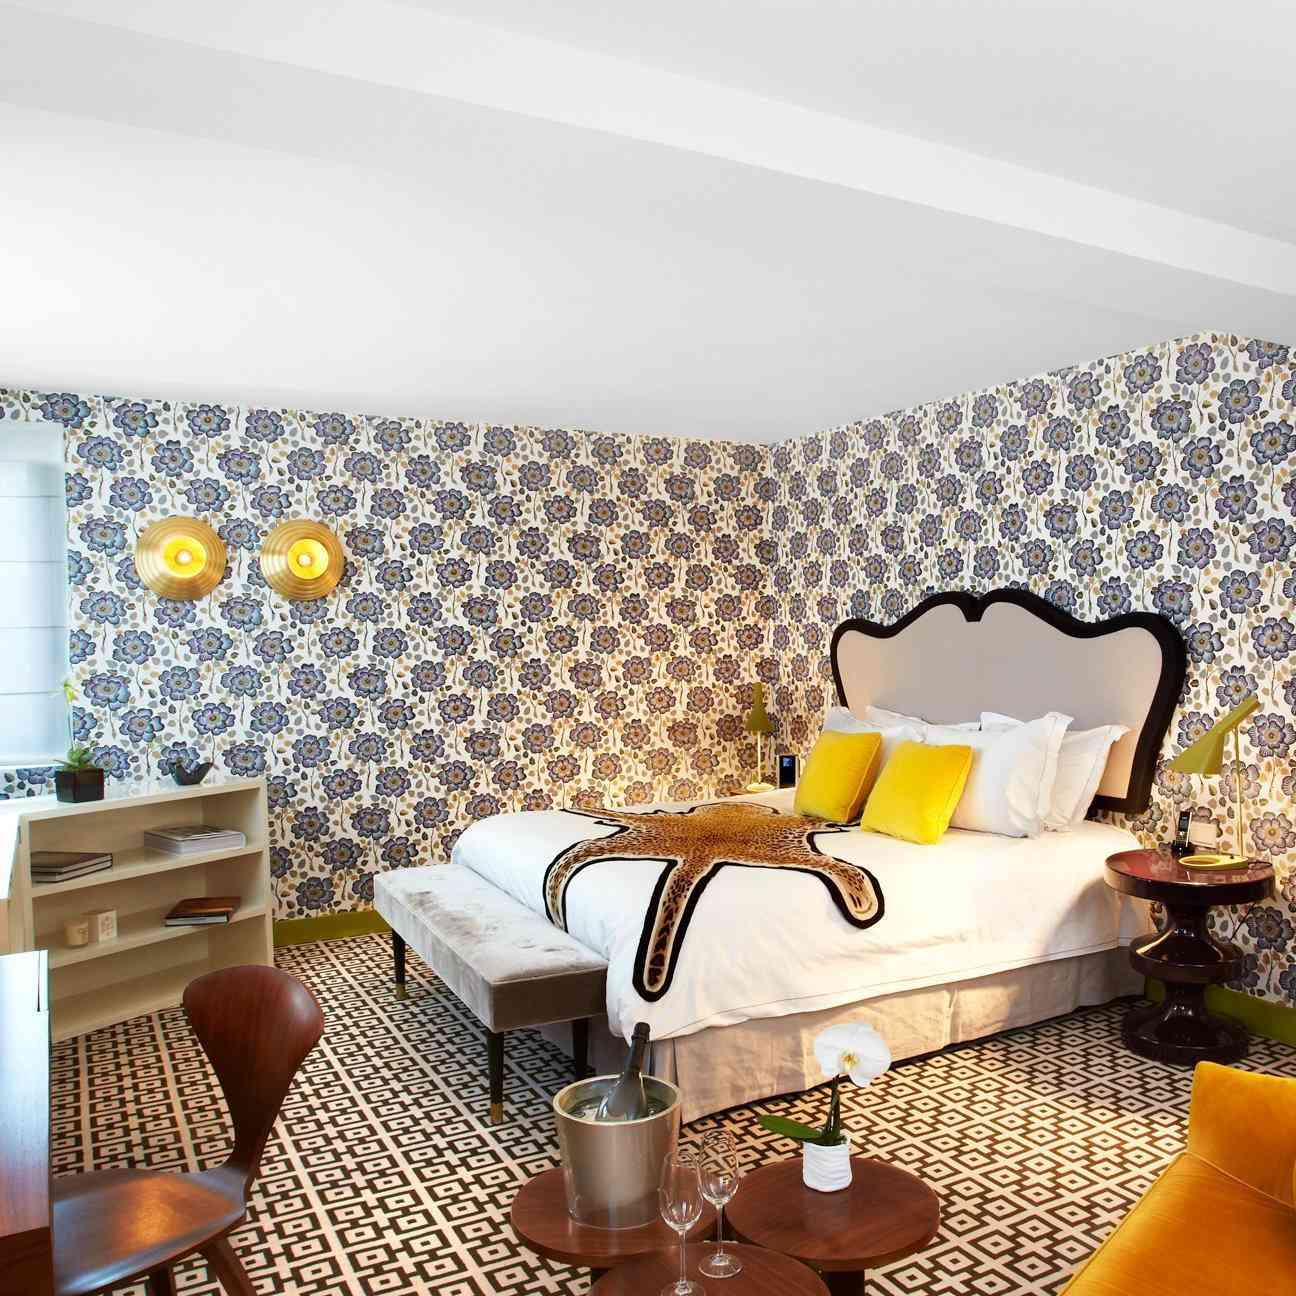 A prestige room at the Hotel Thoumieux, Paris